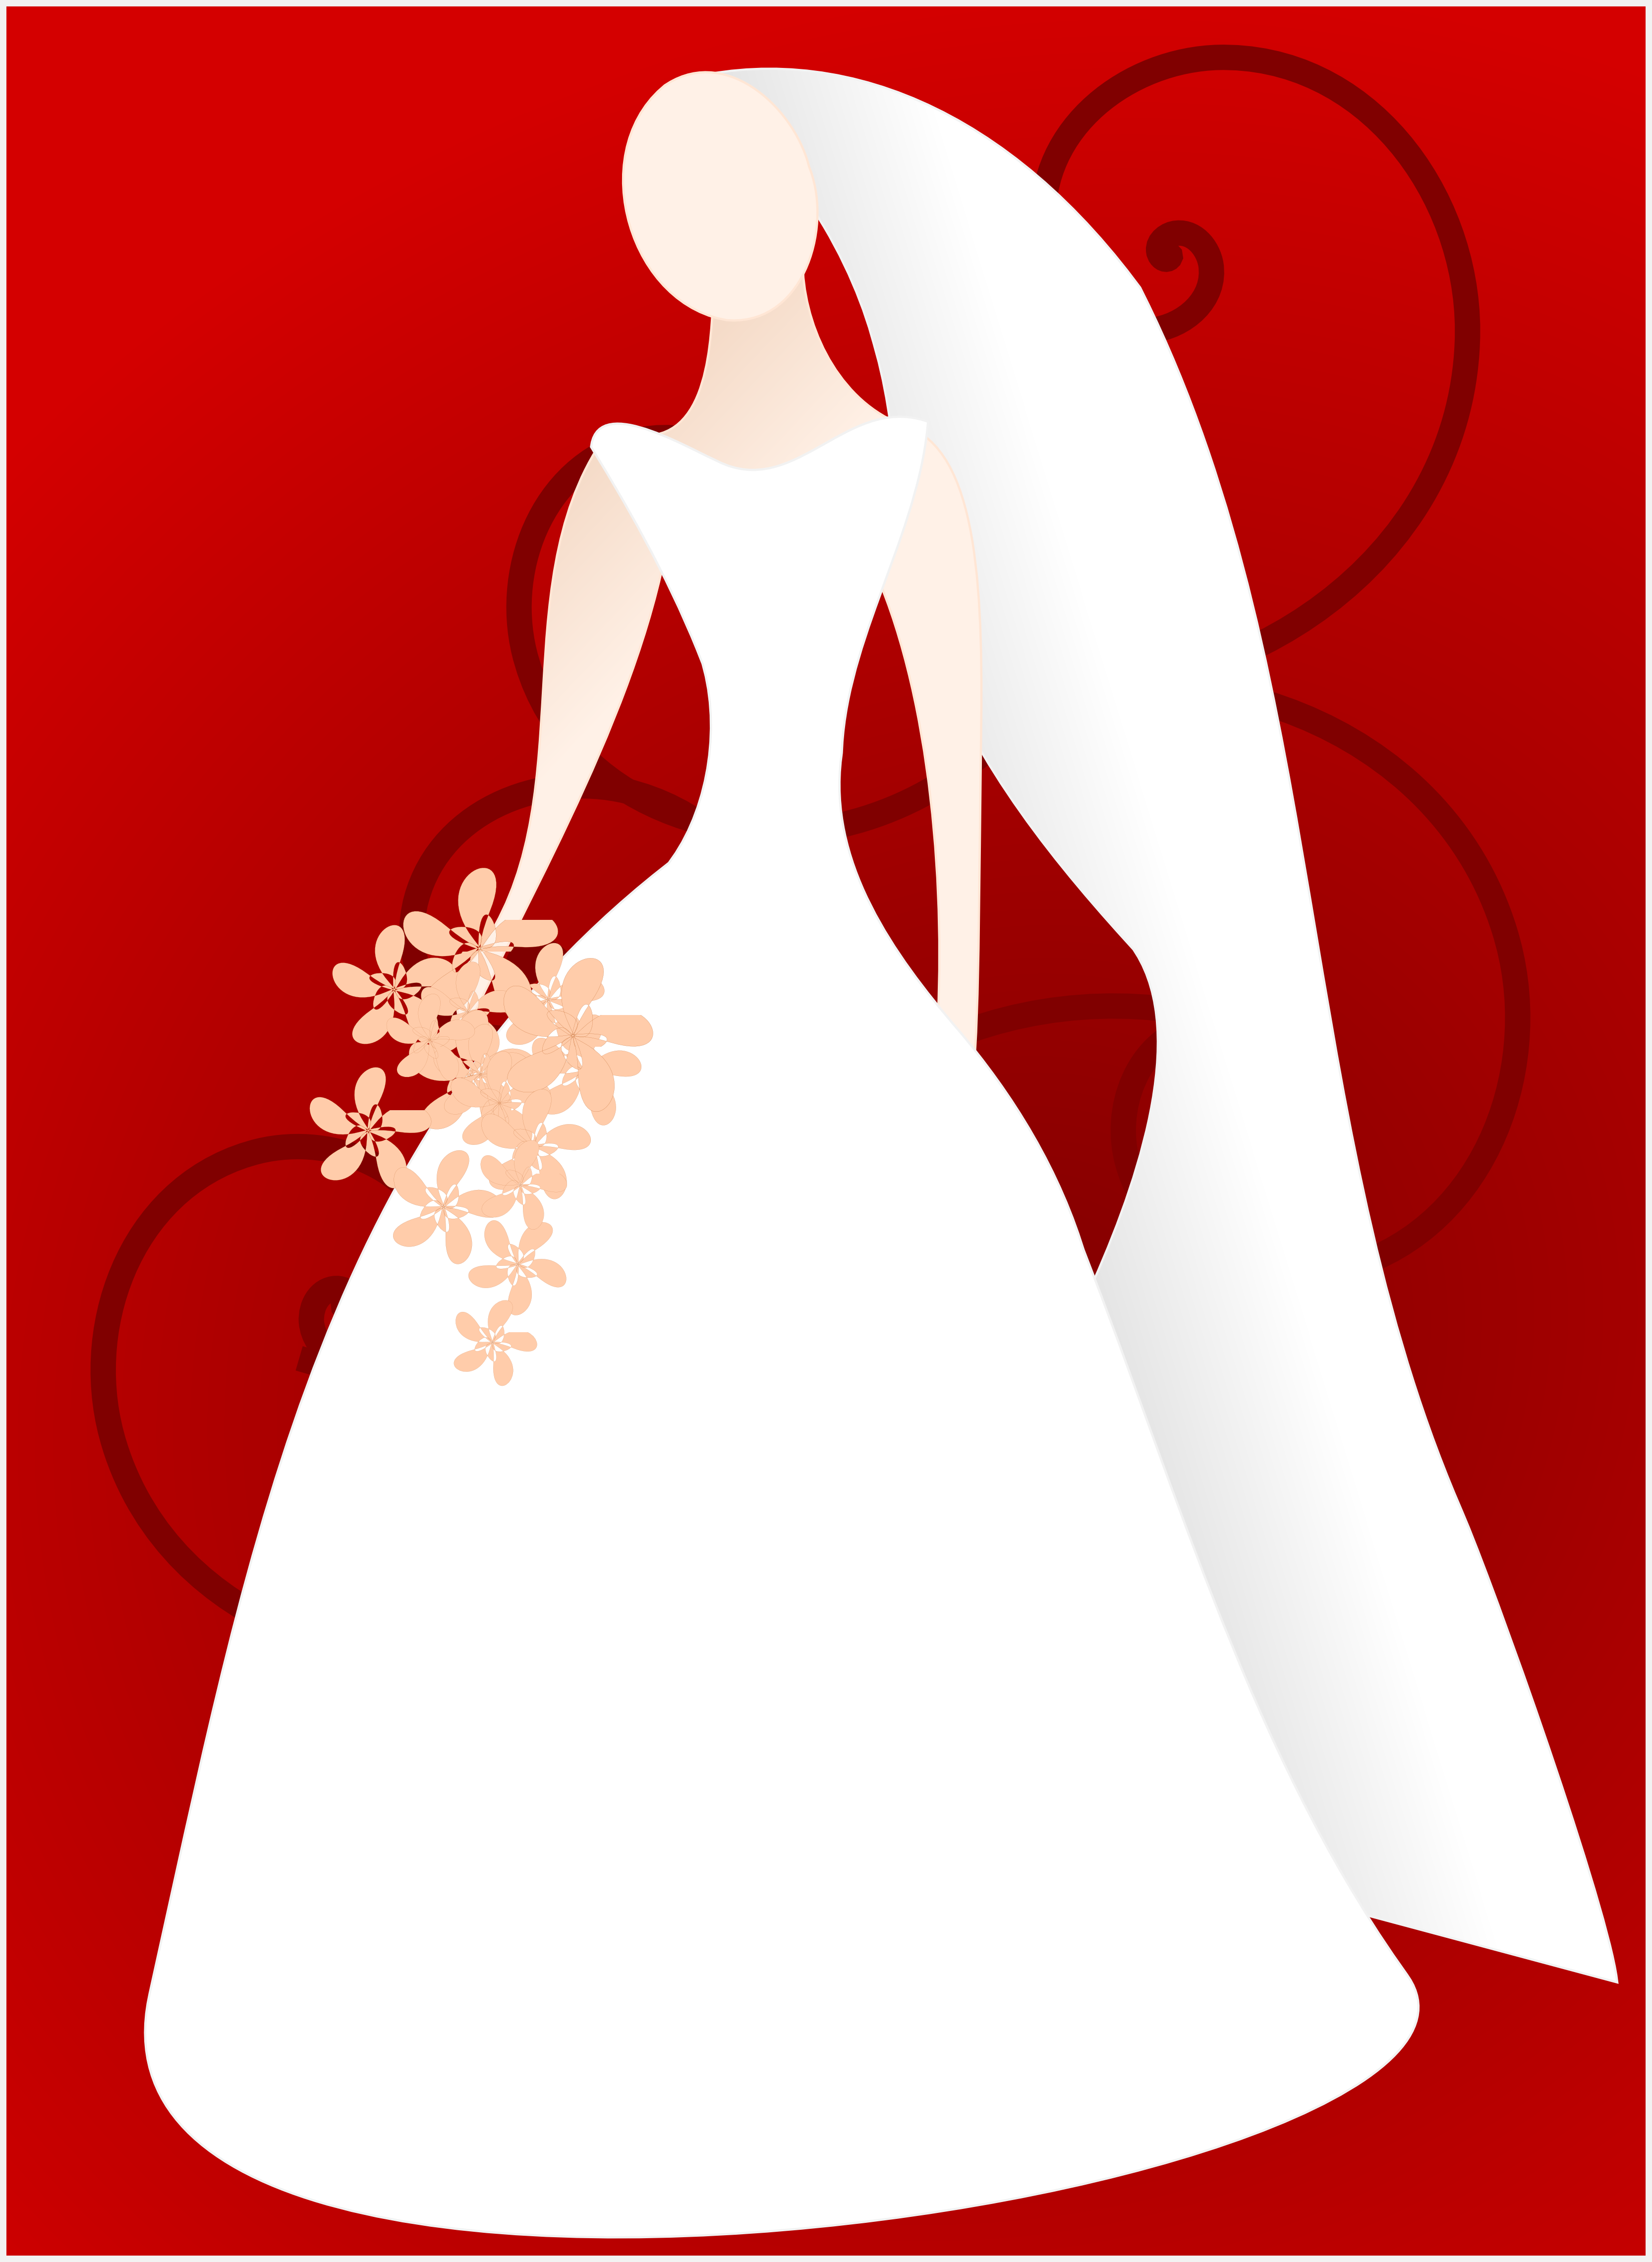 Bridal shower clipart for invitations.